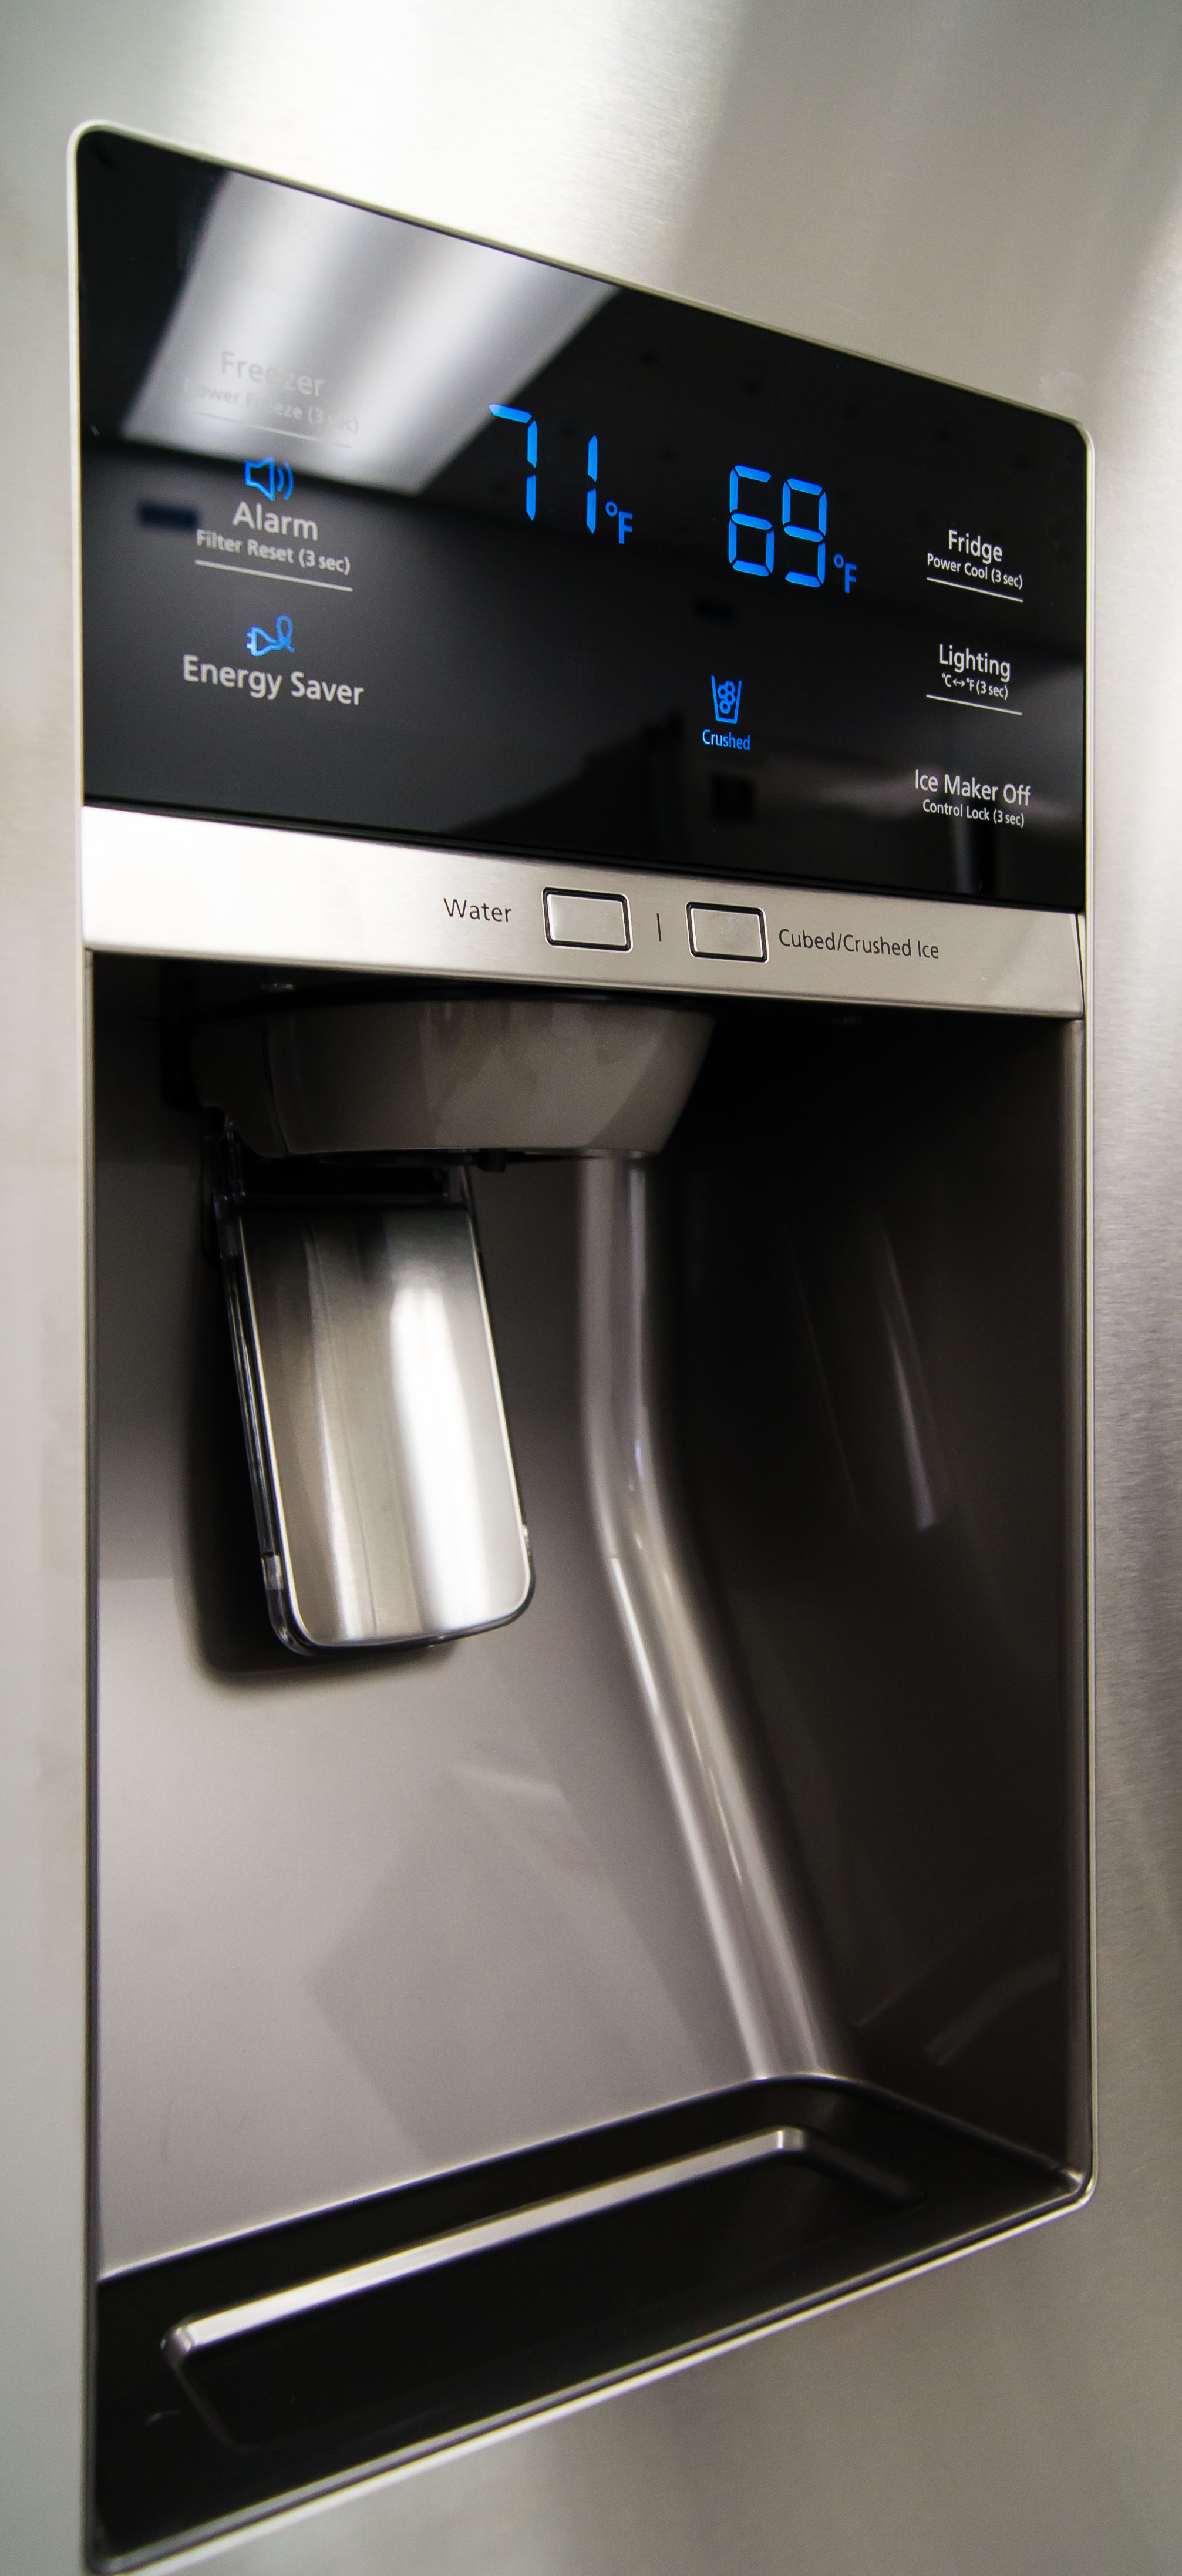 The Samsung RF28HDEDBSR's through-the-door dispenser can comfortably accommodate a standard drinking glass.